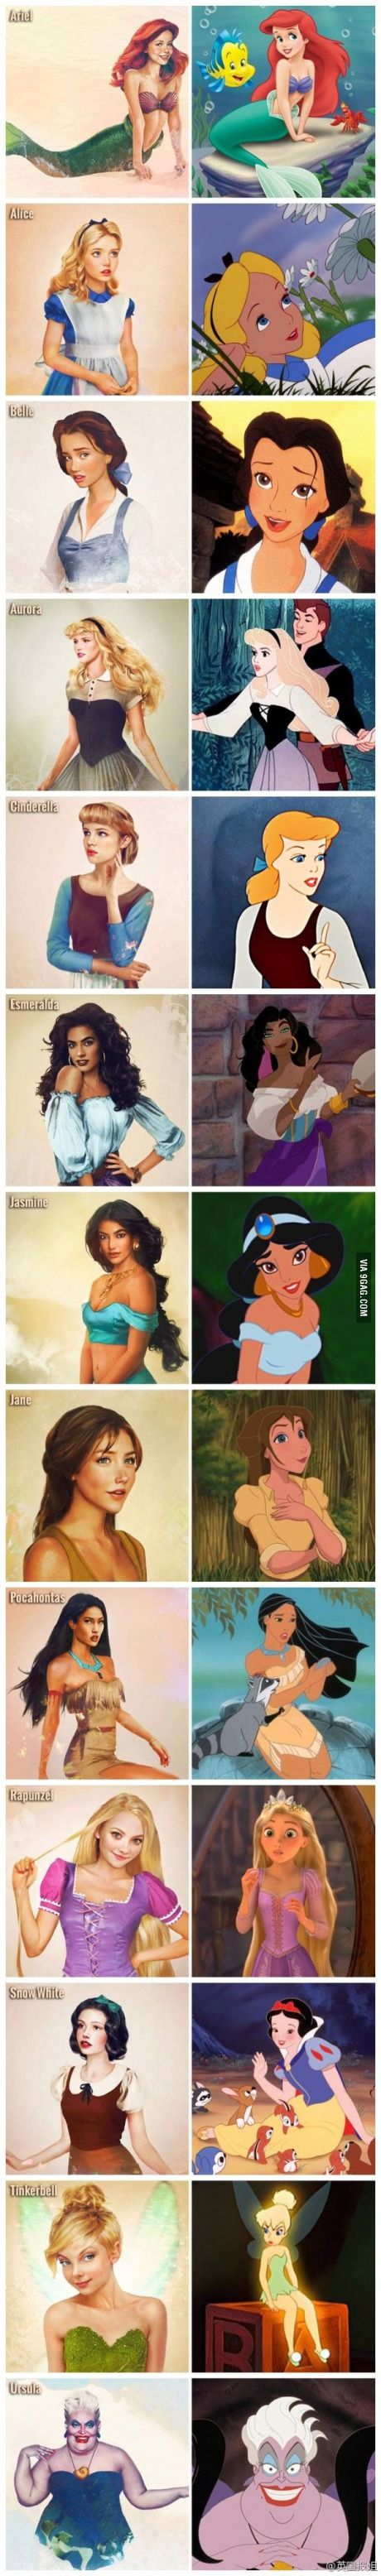 Realistic Disney characters - notice the eyes... So much less creepy